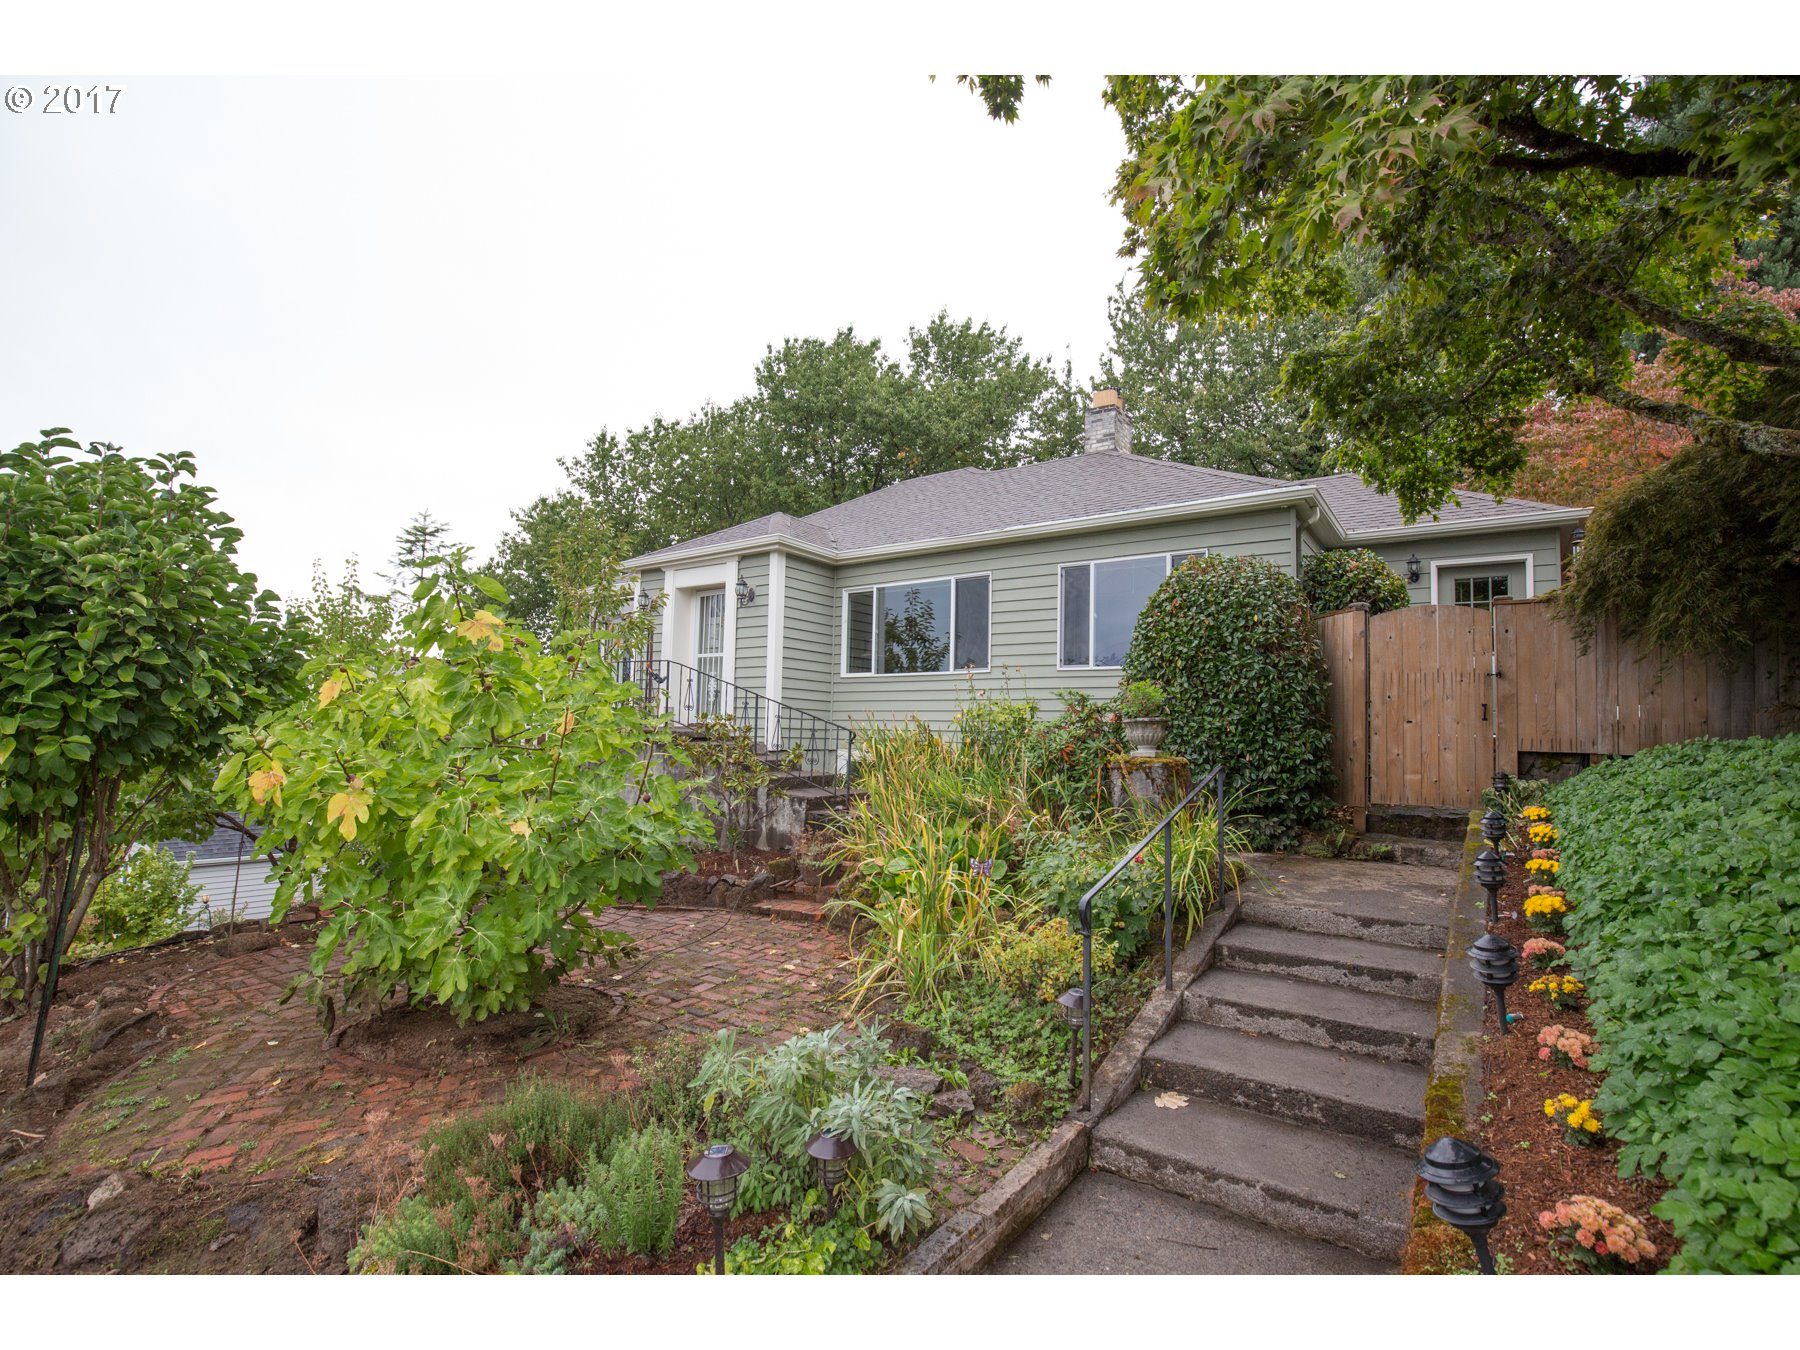 606 SE 58TH AVE, Portland OR 97215